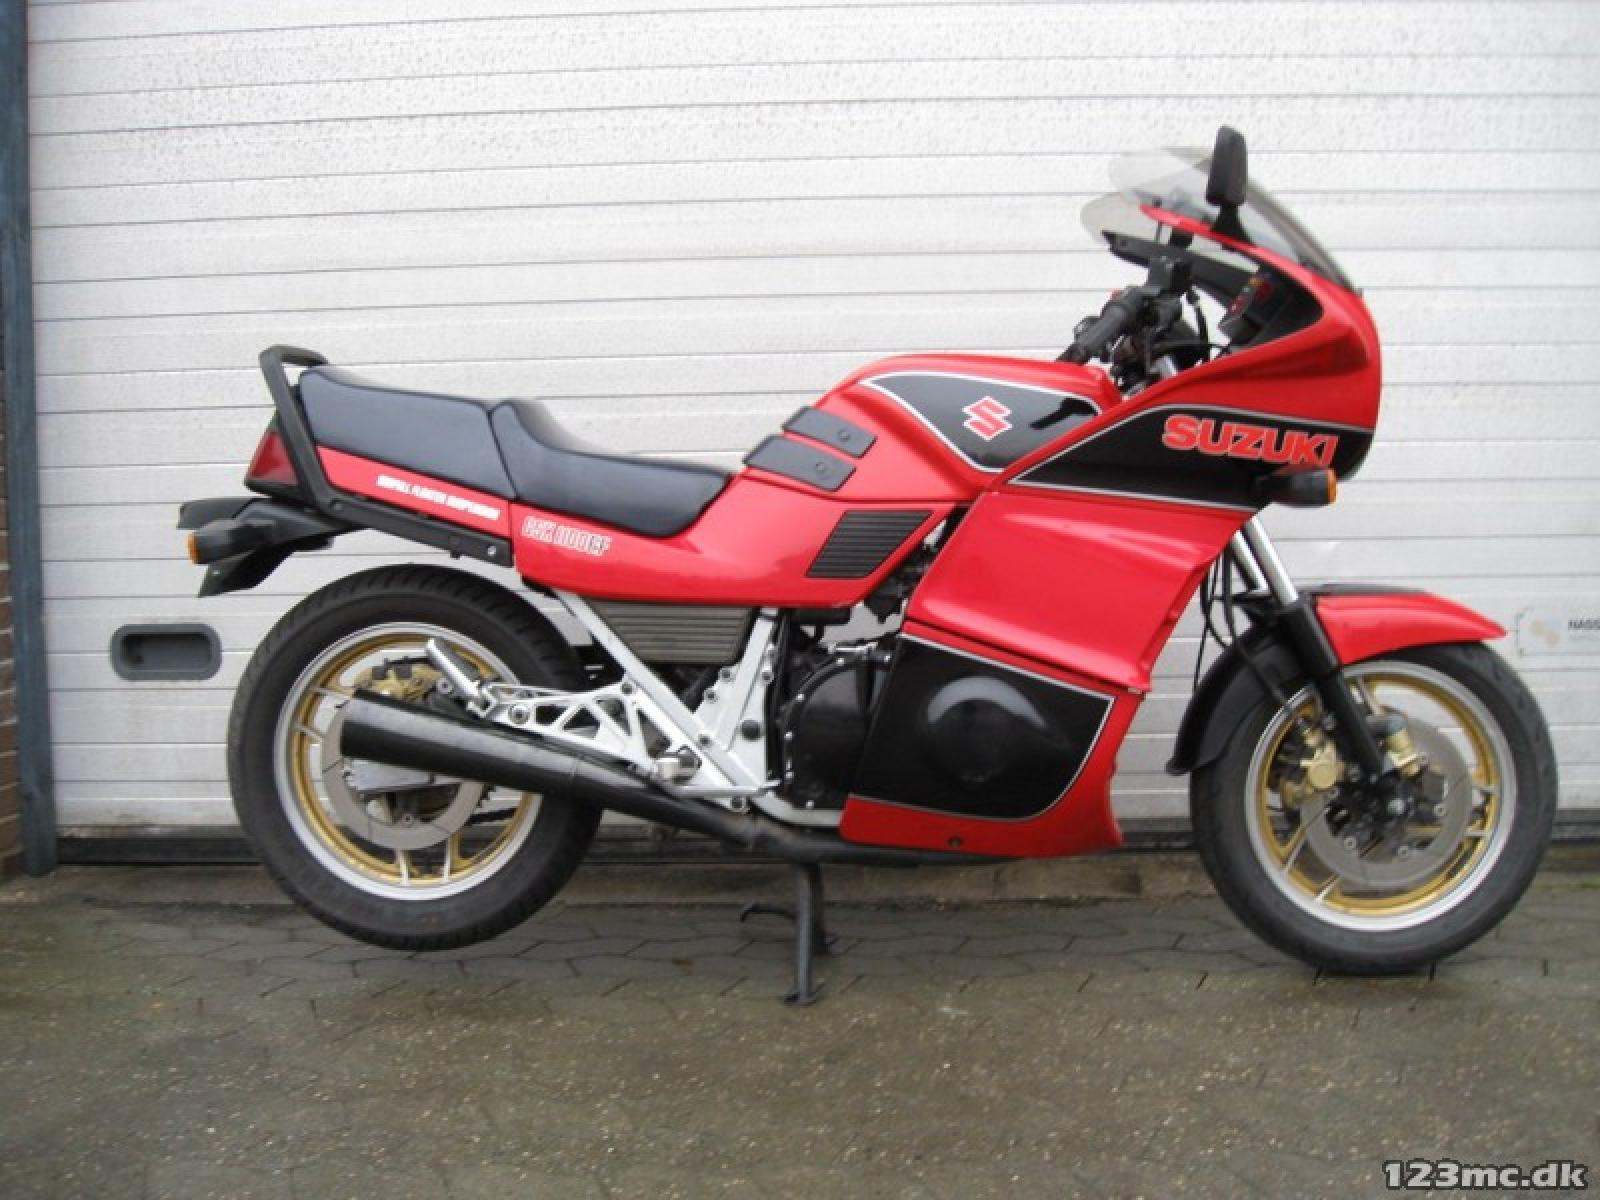 1986 Suzuki GSX 1100 EF (reduced effect) #7